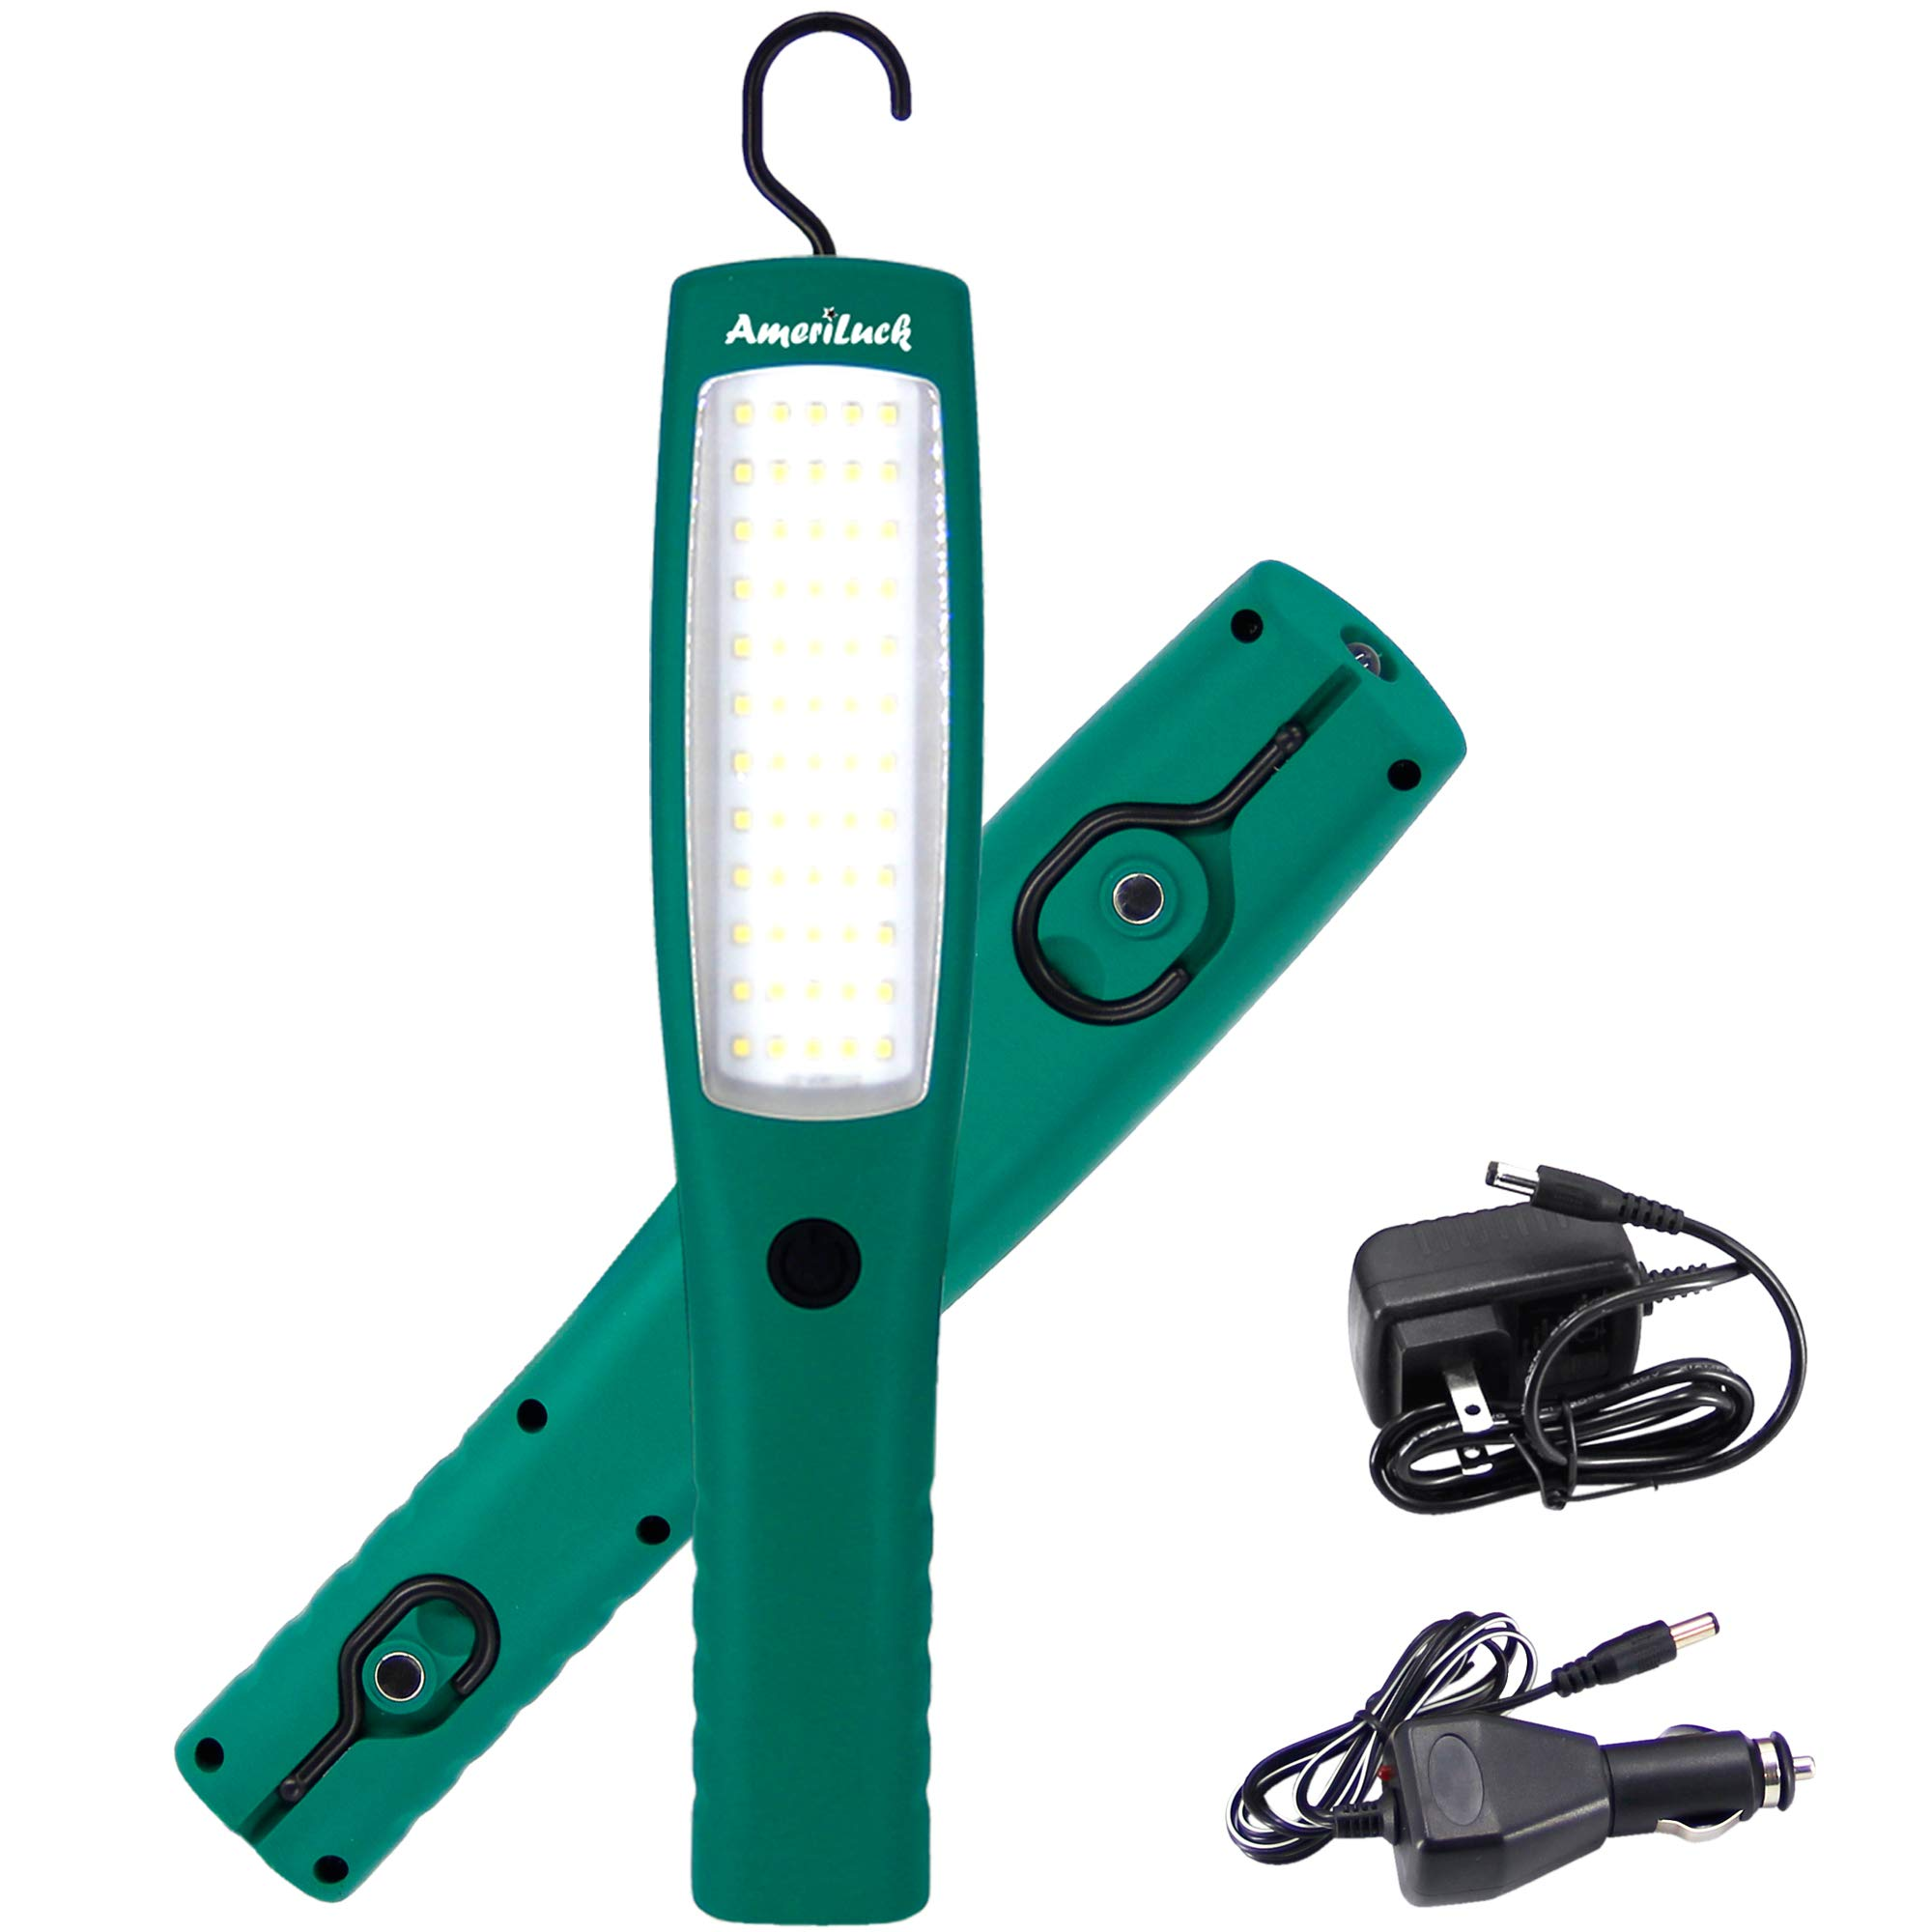 AmeriLuck Commercial Grade LED Work Light, Cordless 13'' Professional Handheld, 5,000mAh Rechargeable Portable Lamp Flashlight w/Hanging Hooks, Magnets, 60 LED Diodes Super Bright 1000+Lumens, 3 Modes